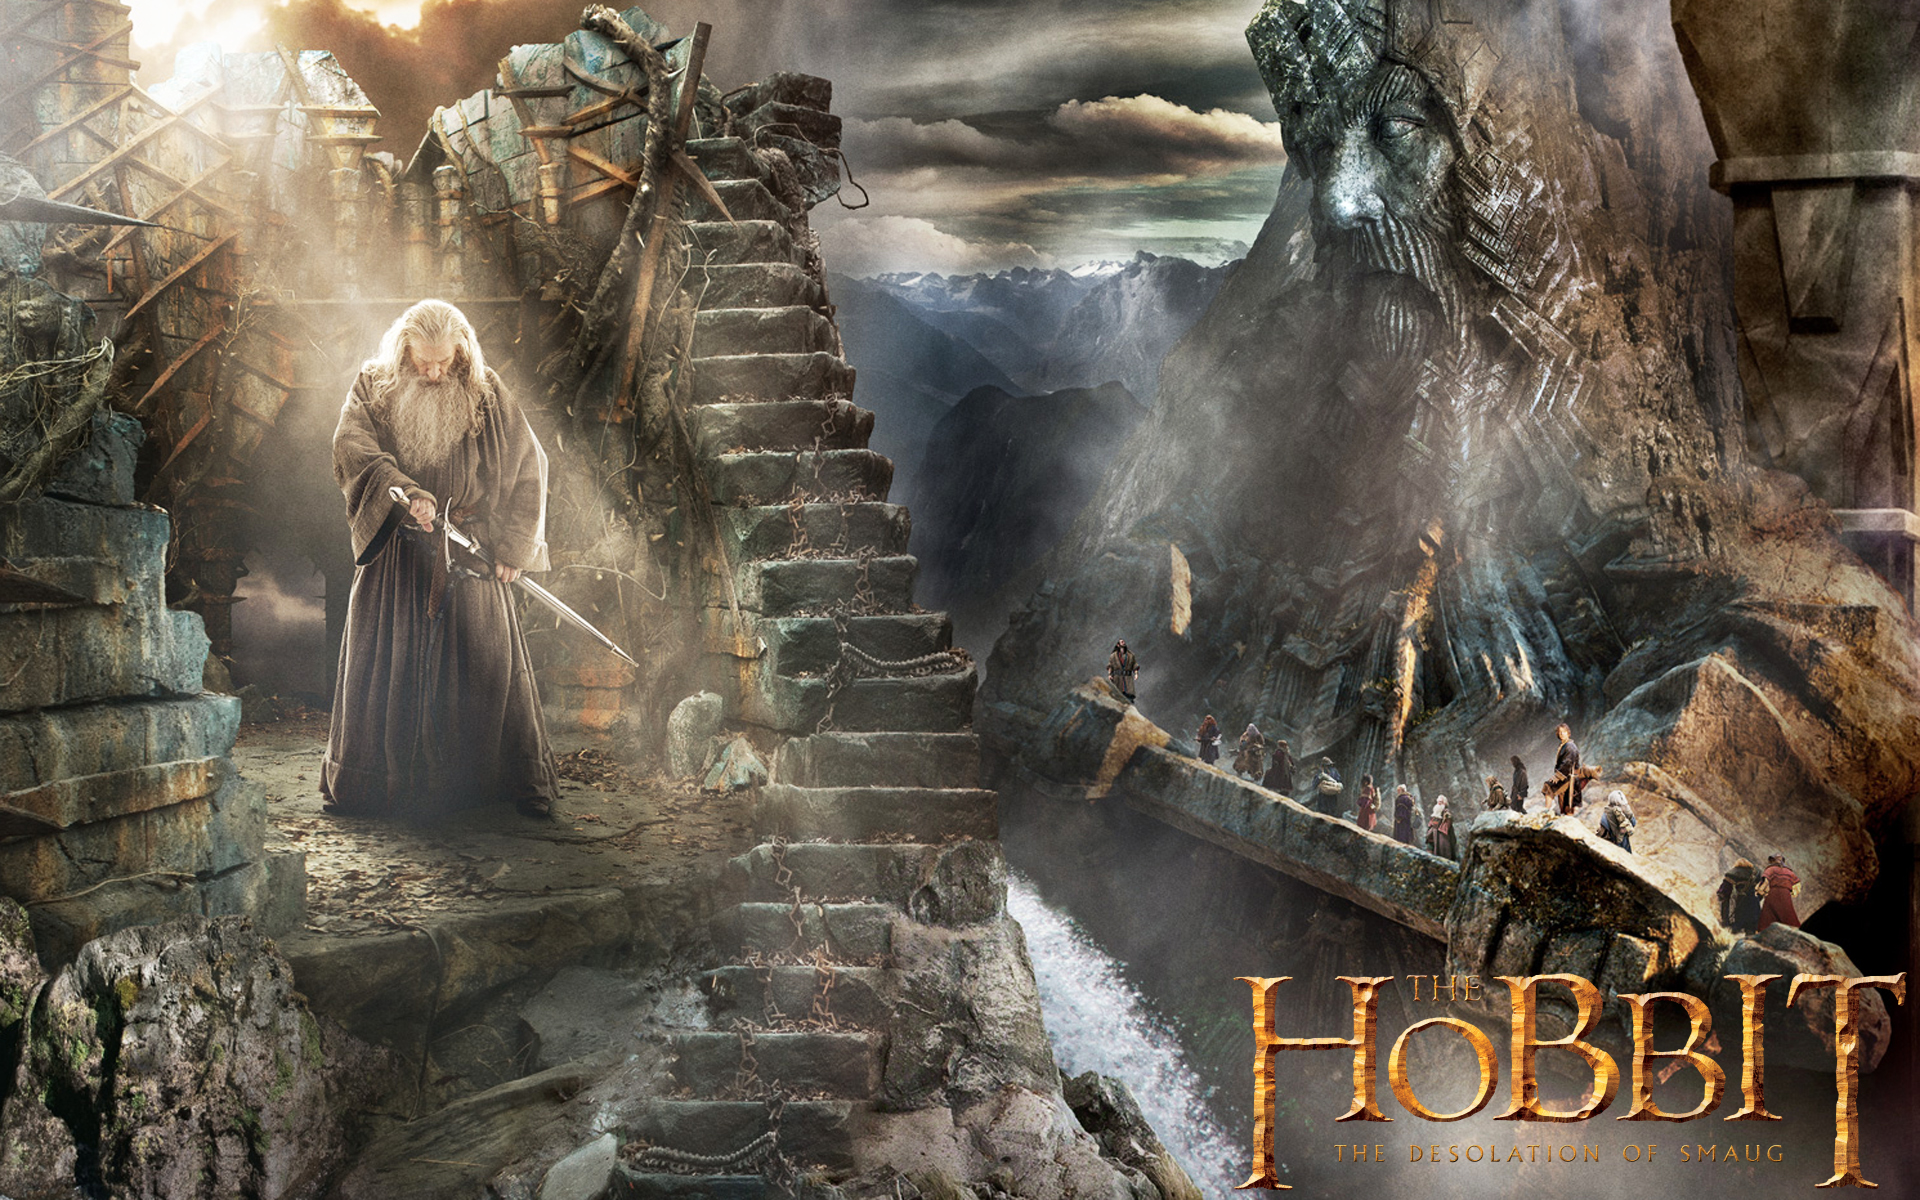 The Hobbit The Desolation of Smaug Wallpaper   The Hobbit 1920x1200